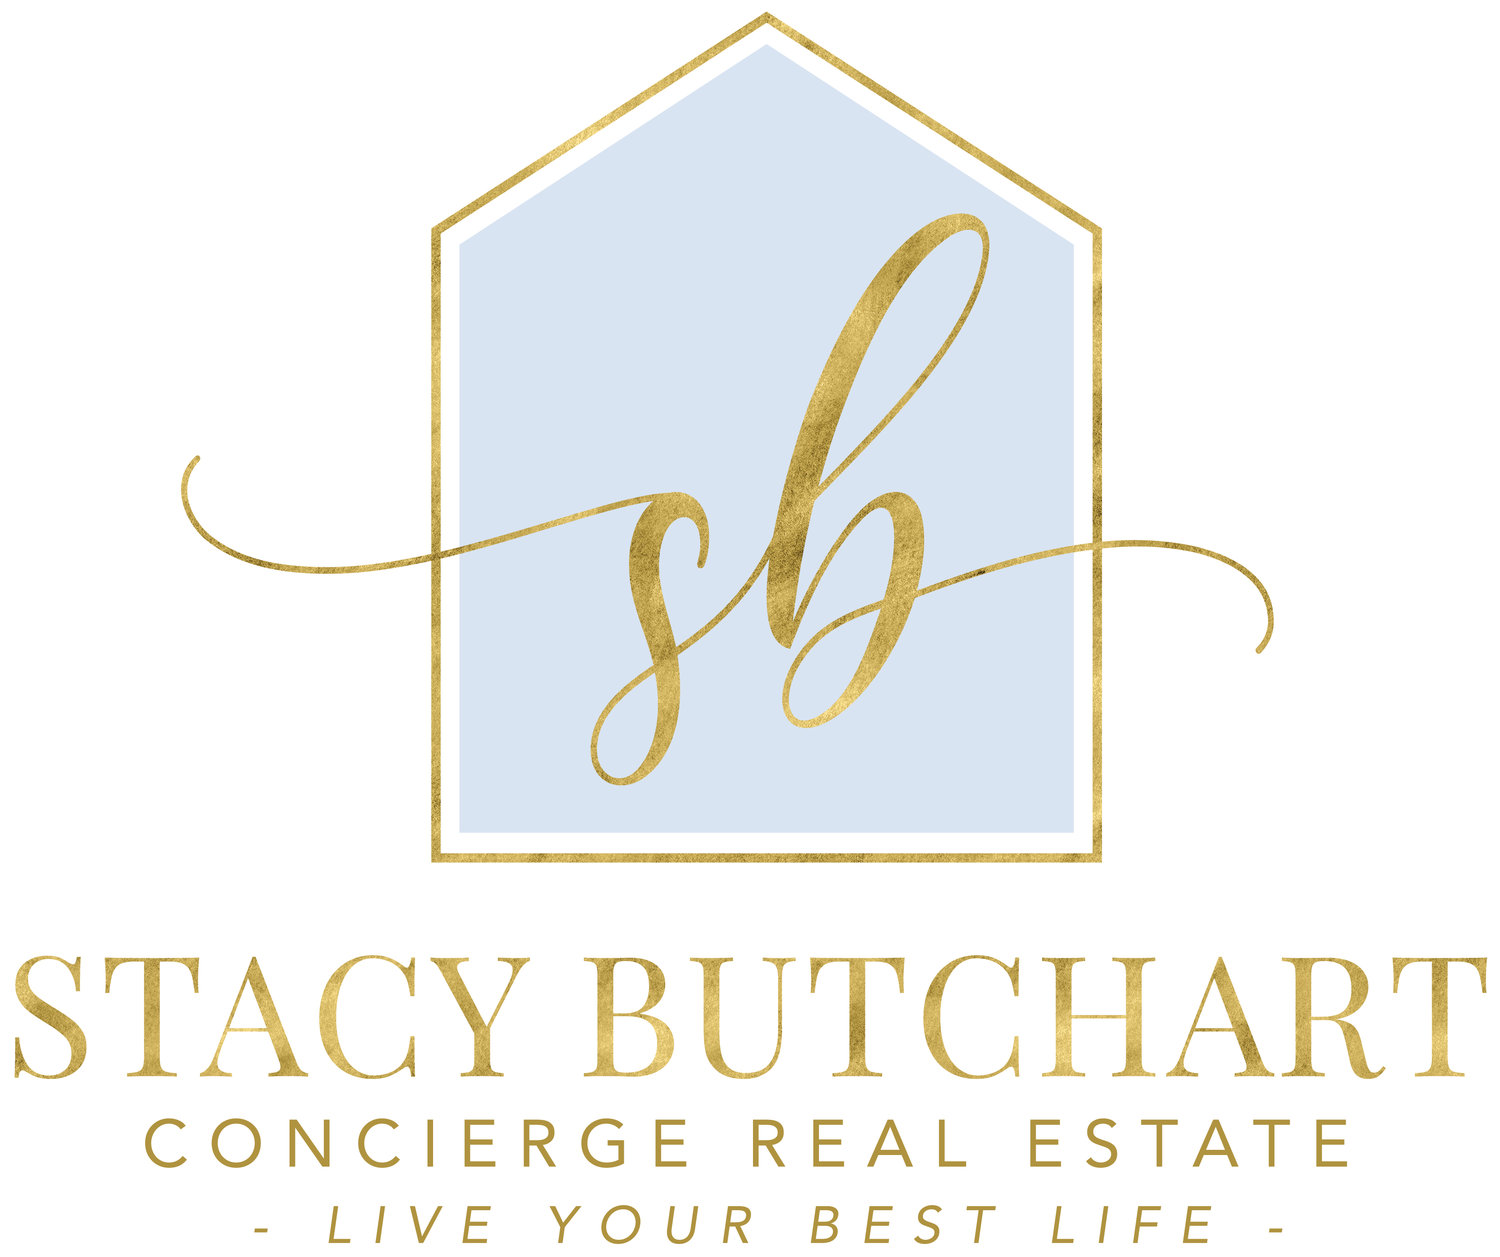 Stacy Butchart